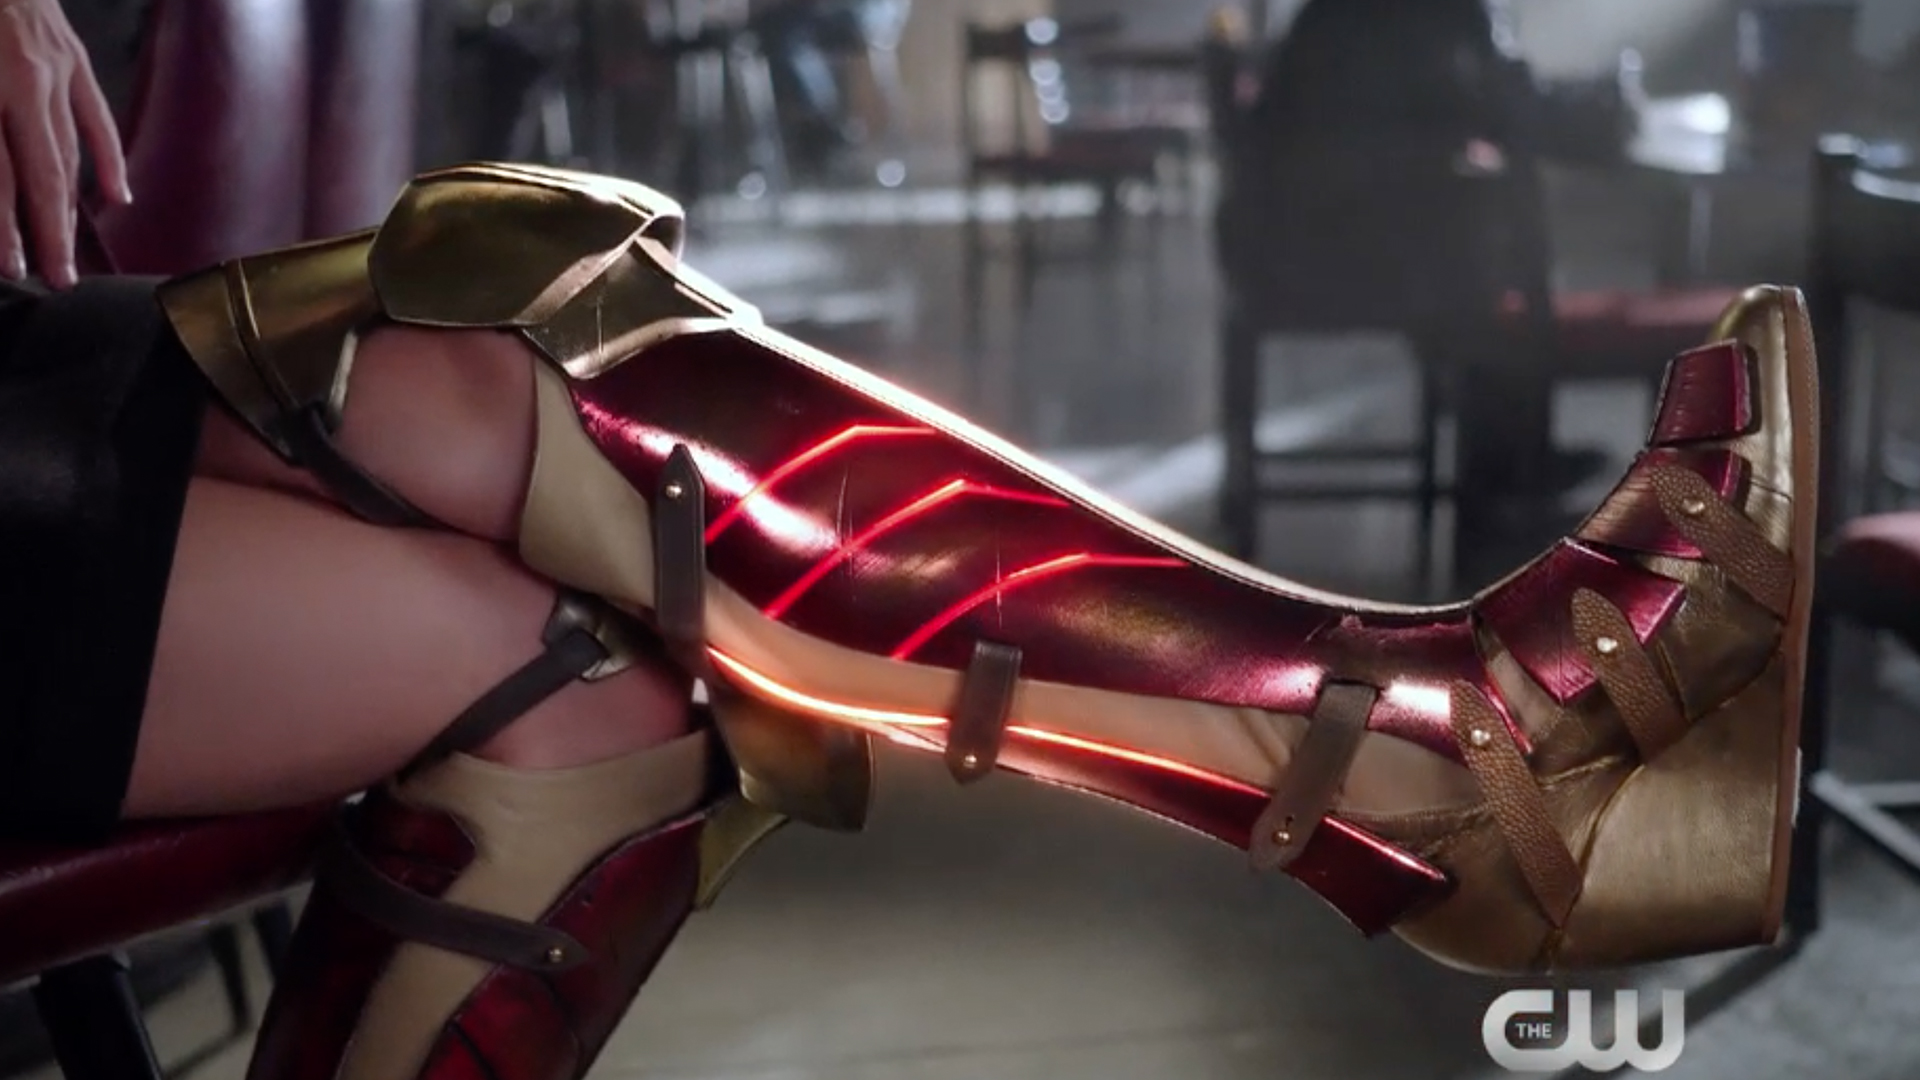 How To Make Wonder Girl Shoe Covers